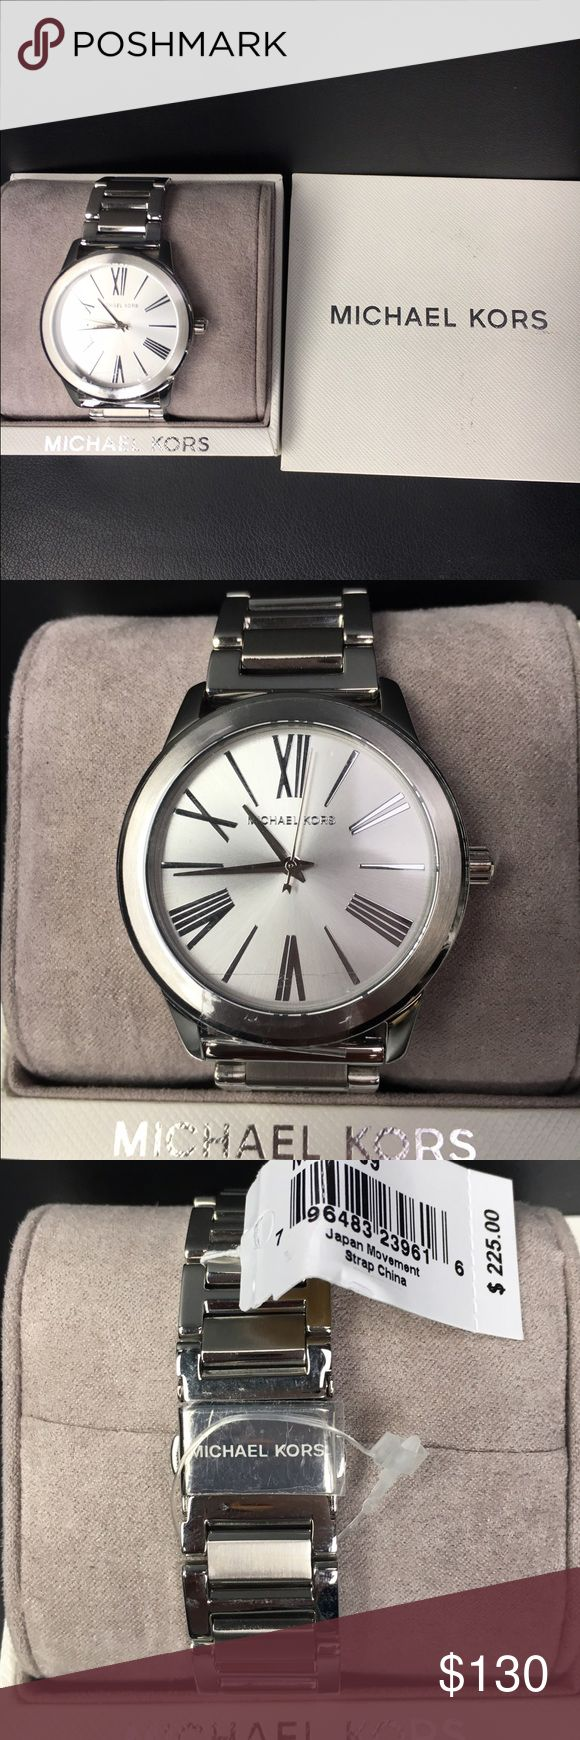 NWT MICHAEL KORS Watch - NWT MICHAEL KORS Watch   - Silver watch with Roman numerals. Traditional linked band and monogrammed clasp  - 100% GUARANTEED AUTHENTIC   - NEW WITH TAGS and in original box Michael Kors Accessories Watches